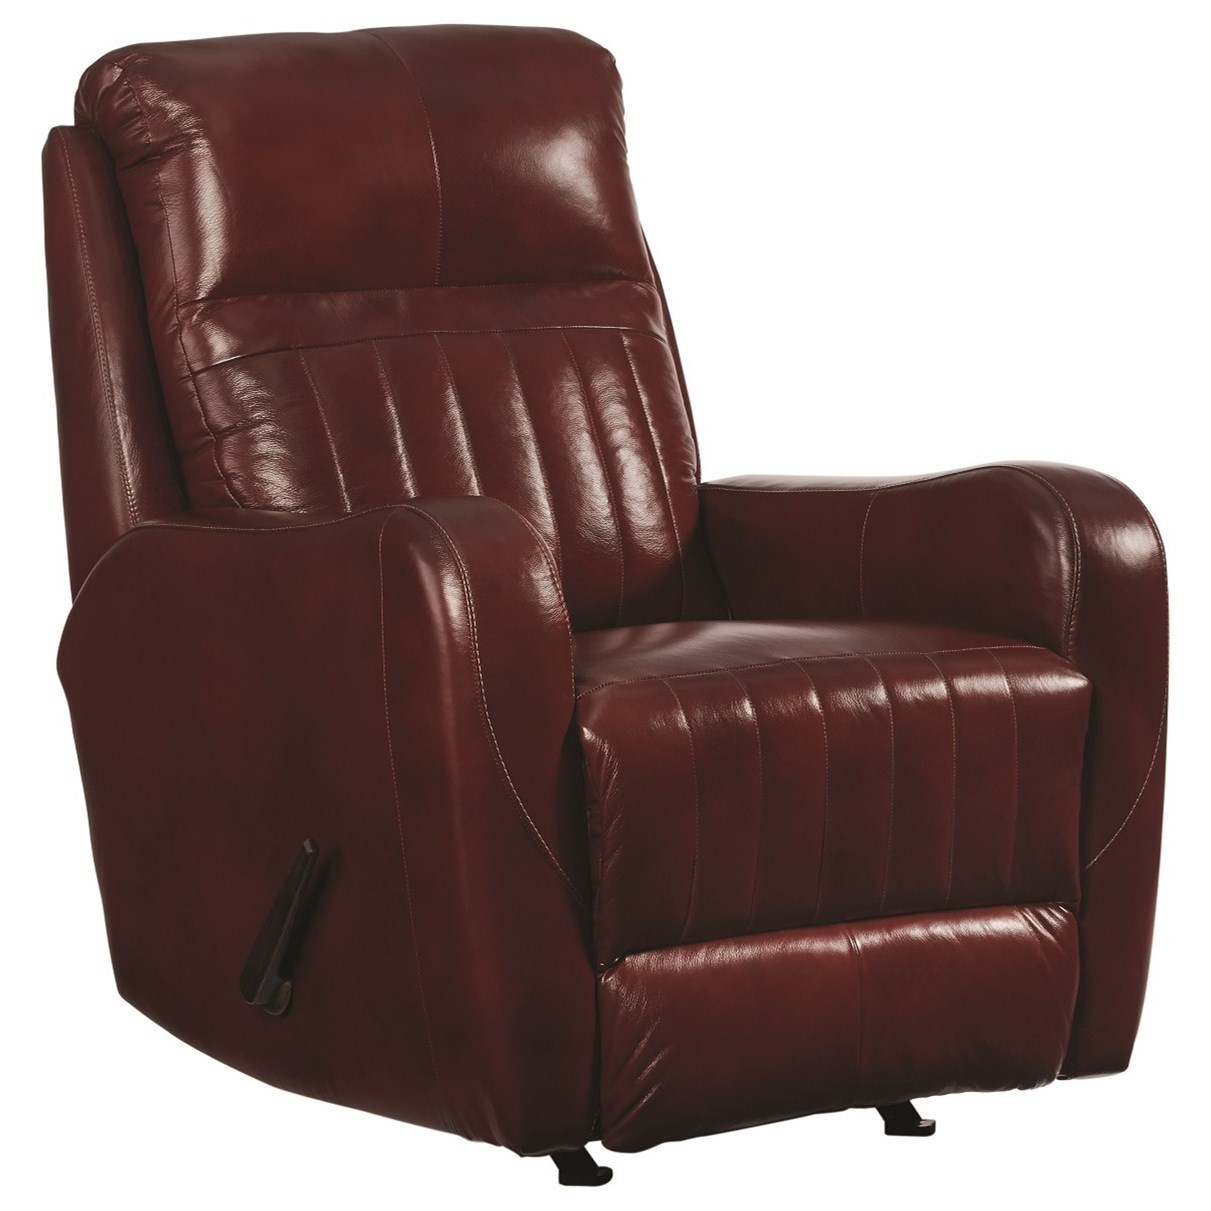 Racetrack Rocker Power Recliner w/ SoCozi by Southern Motion at Becker Furniture